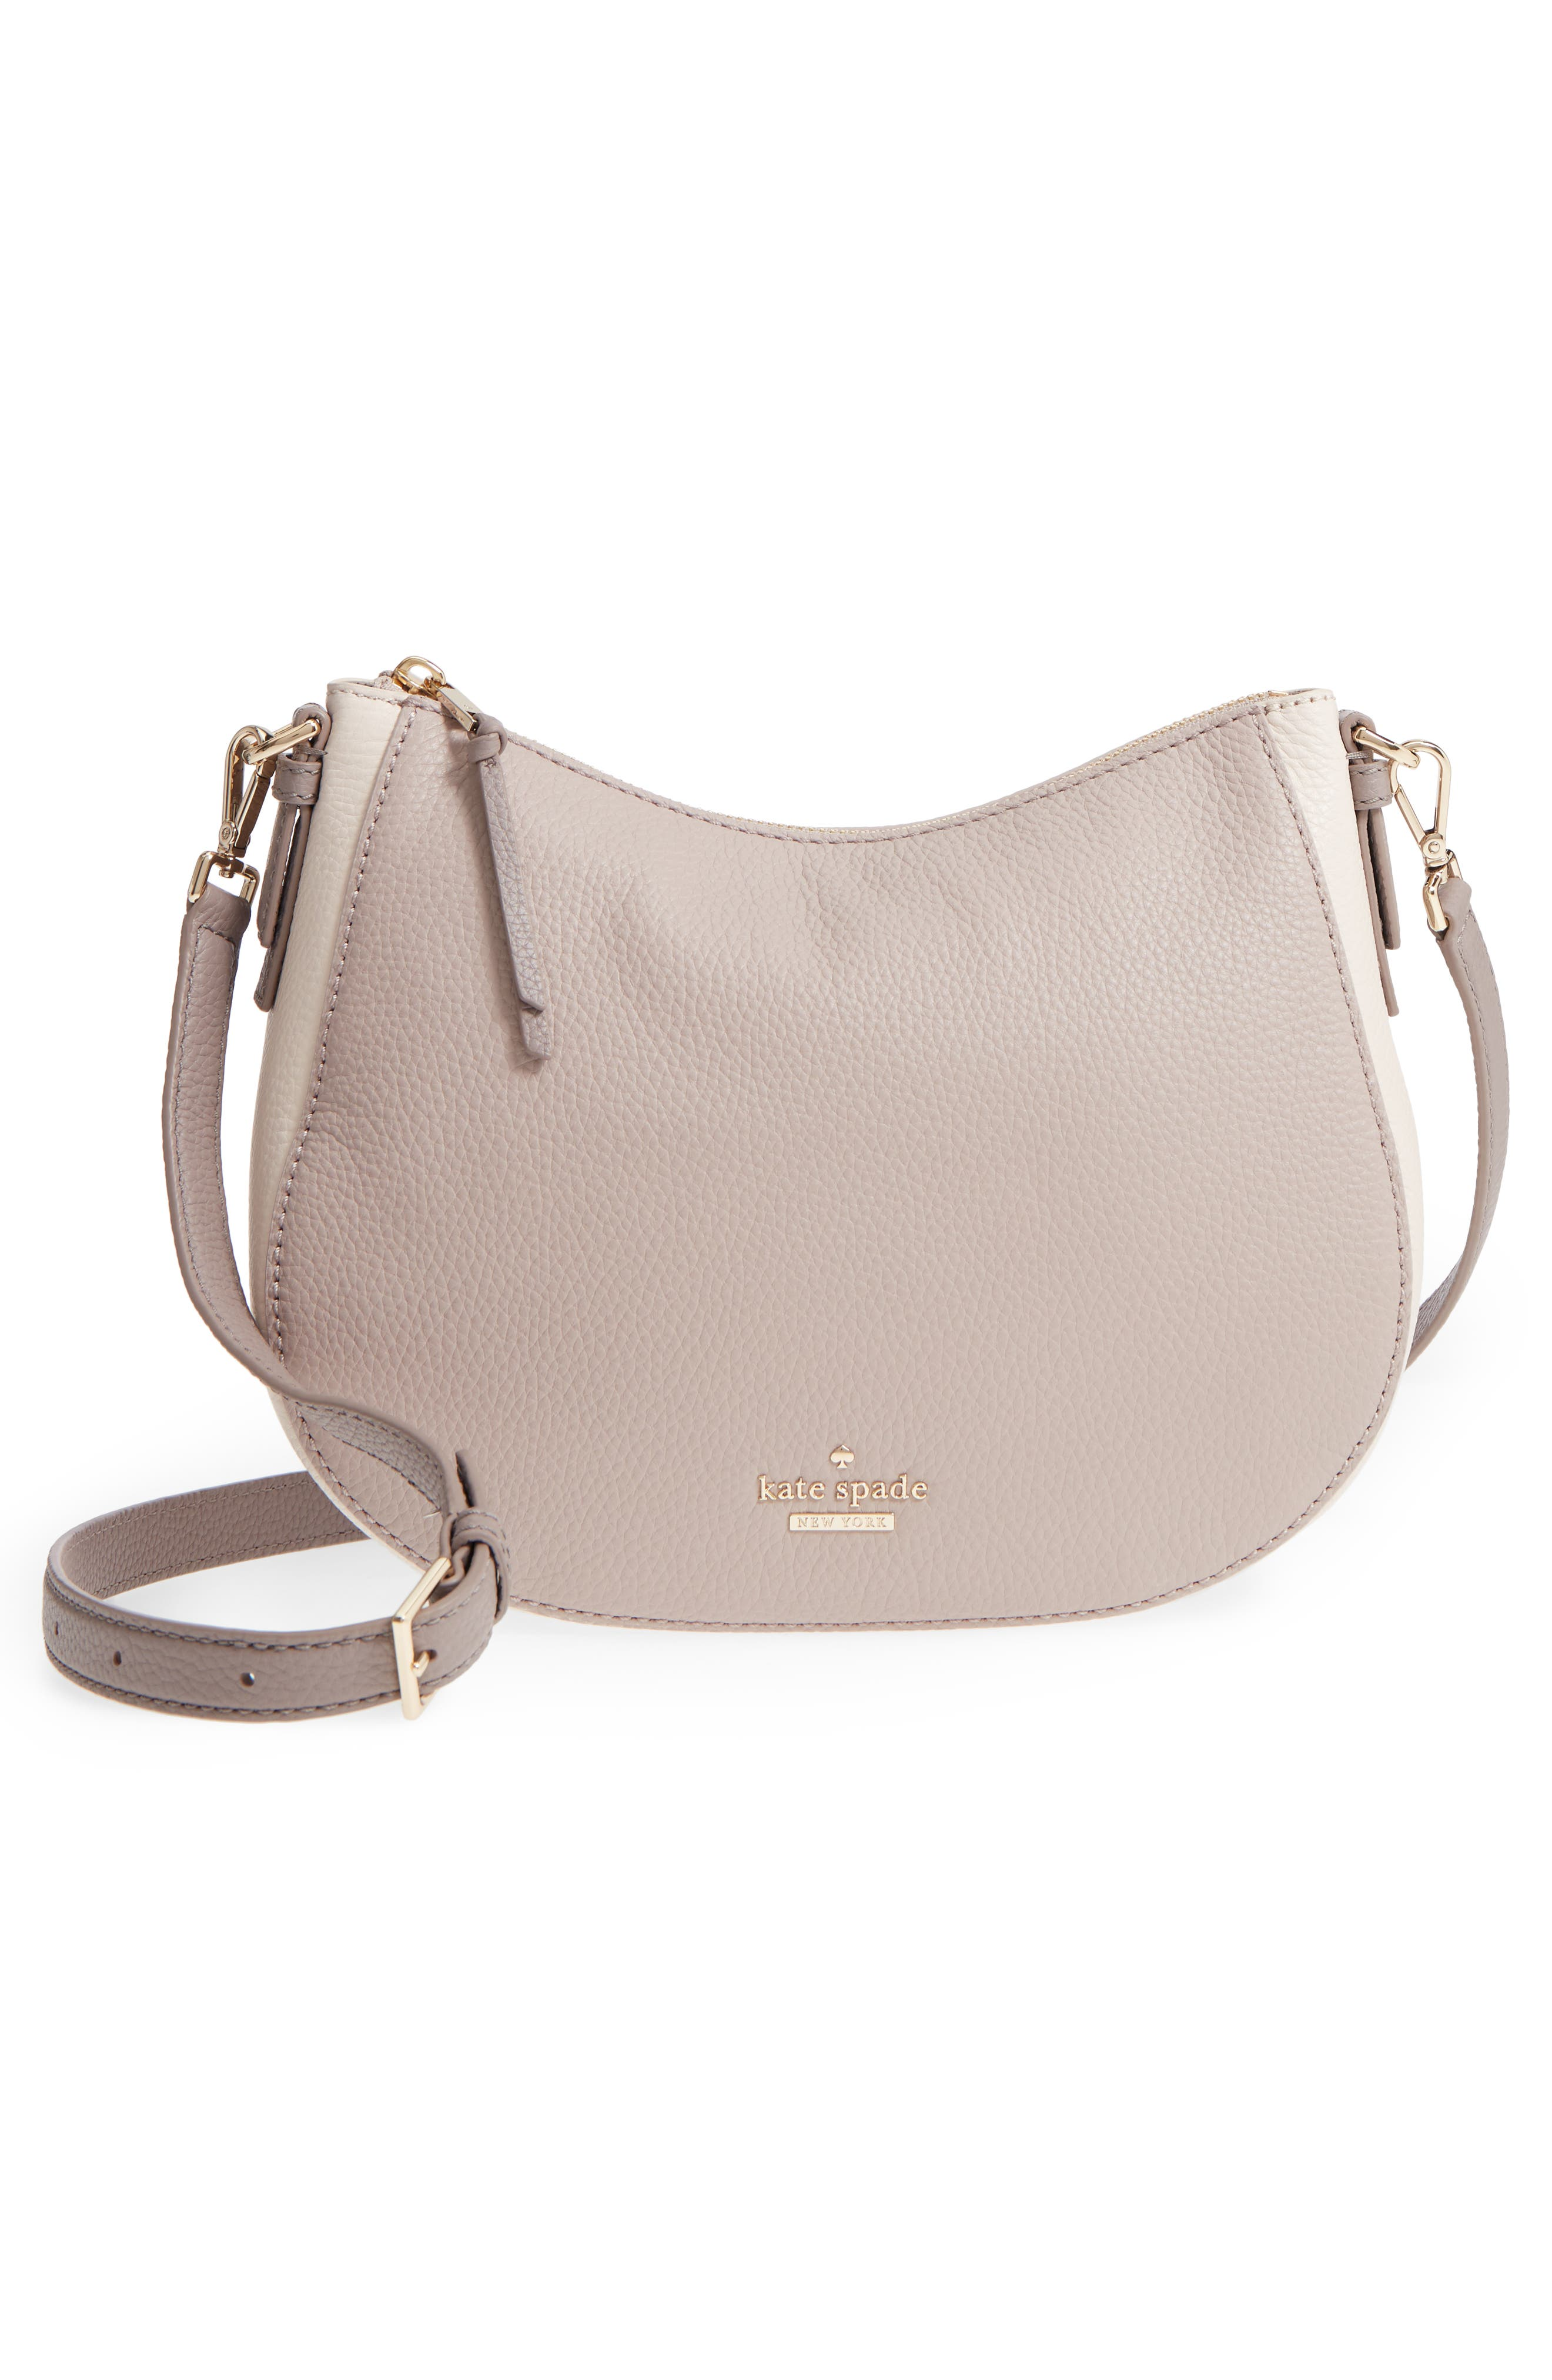 jackson street small mylie leather hobo,                             Alternate thumbnail 3, color,                             100